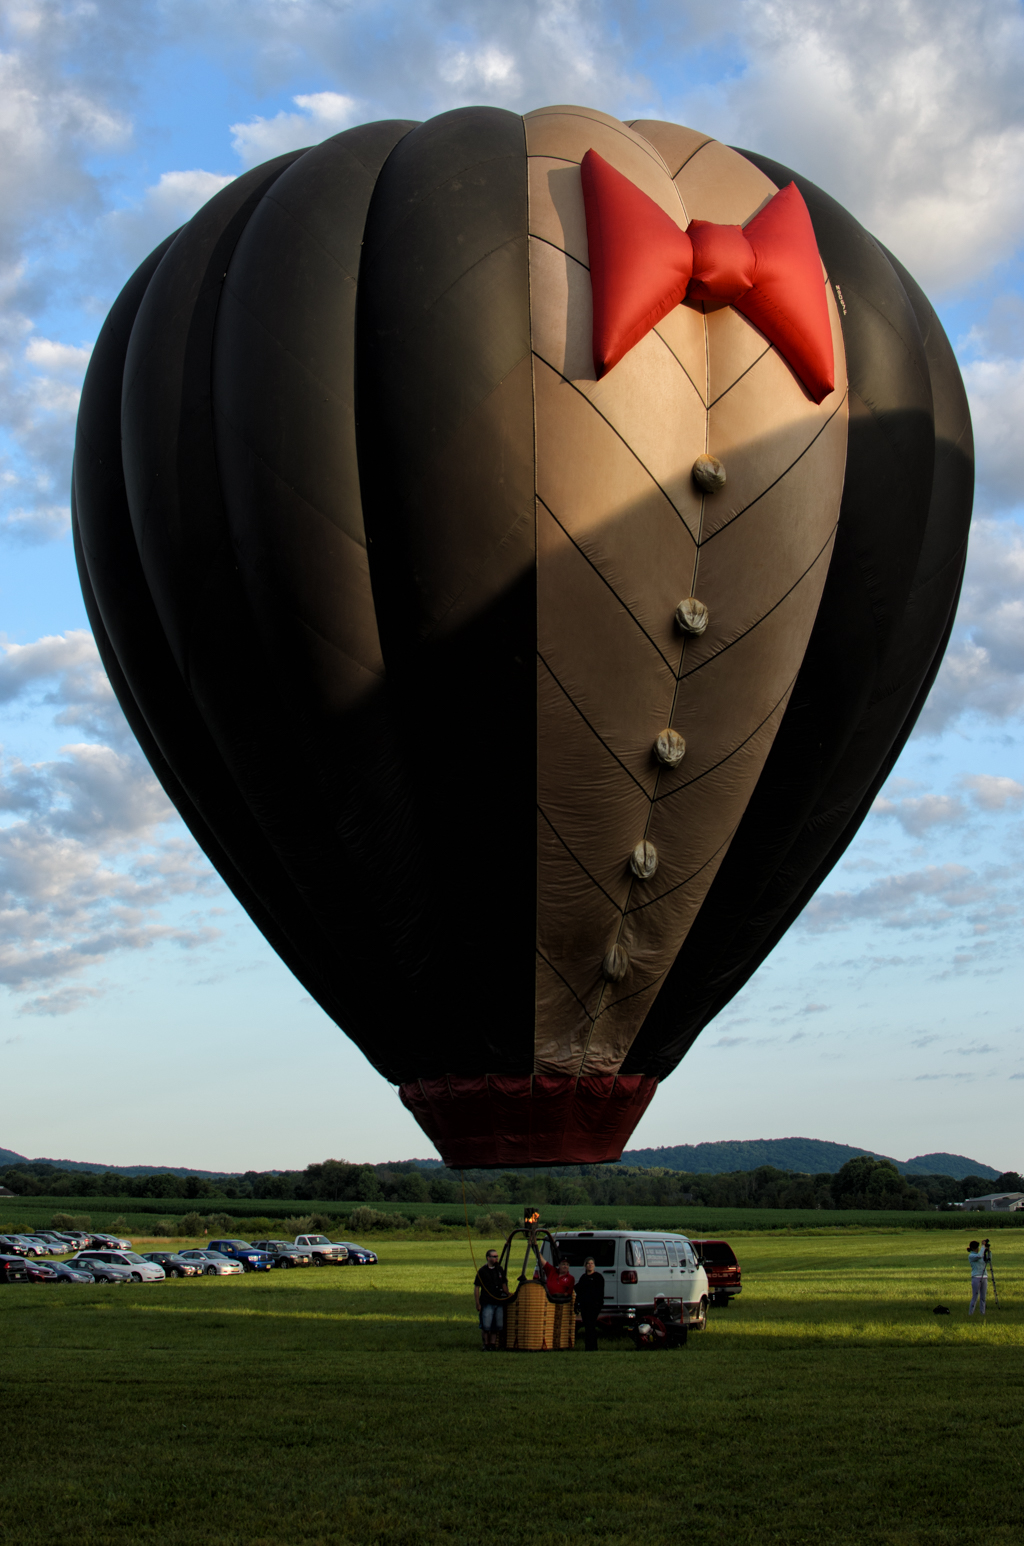 32nd annual New Jersey Festival of Ballooning wpid14592 NIKON D5100 20140725 1029 Edit